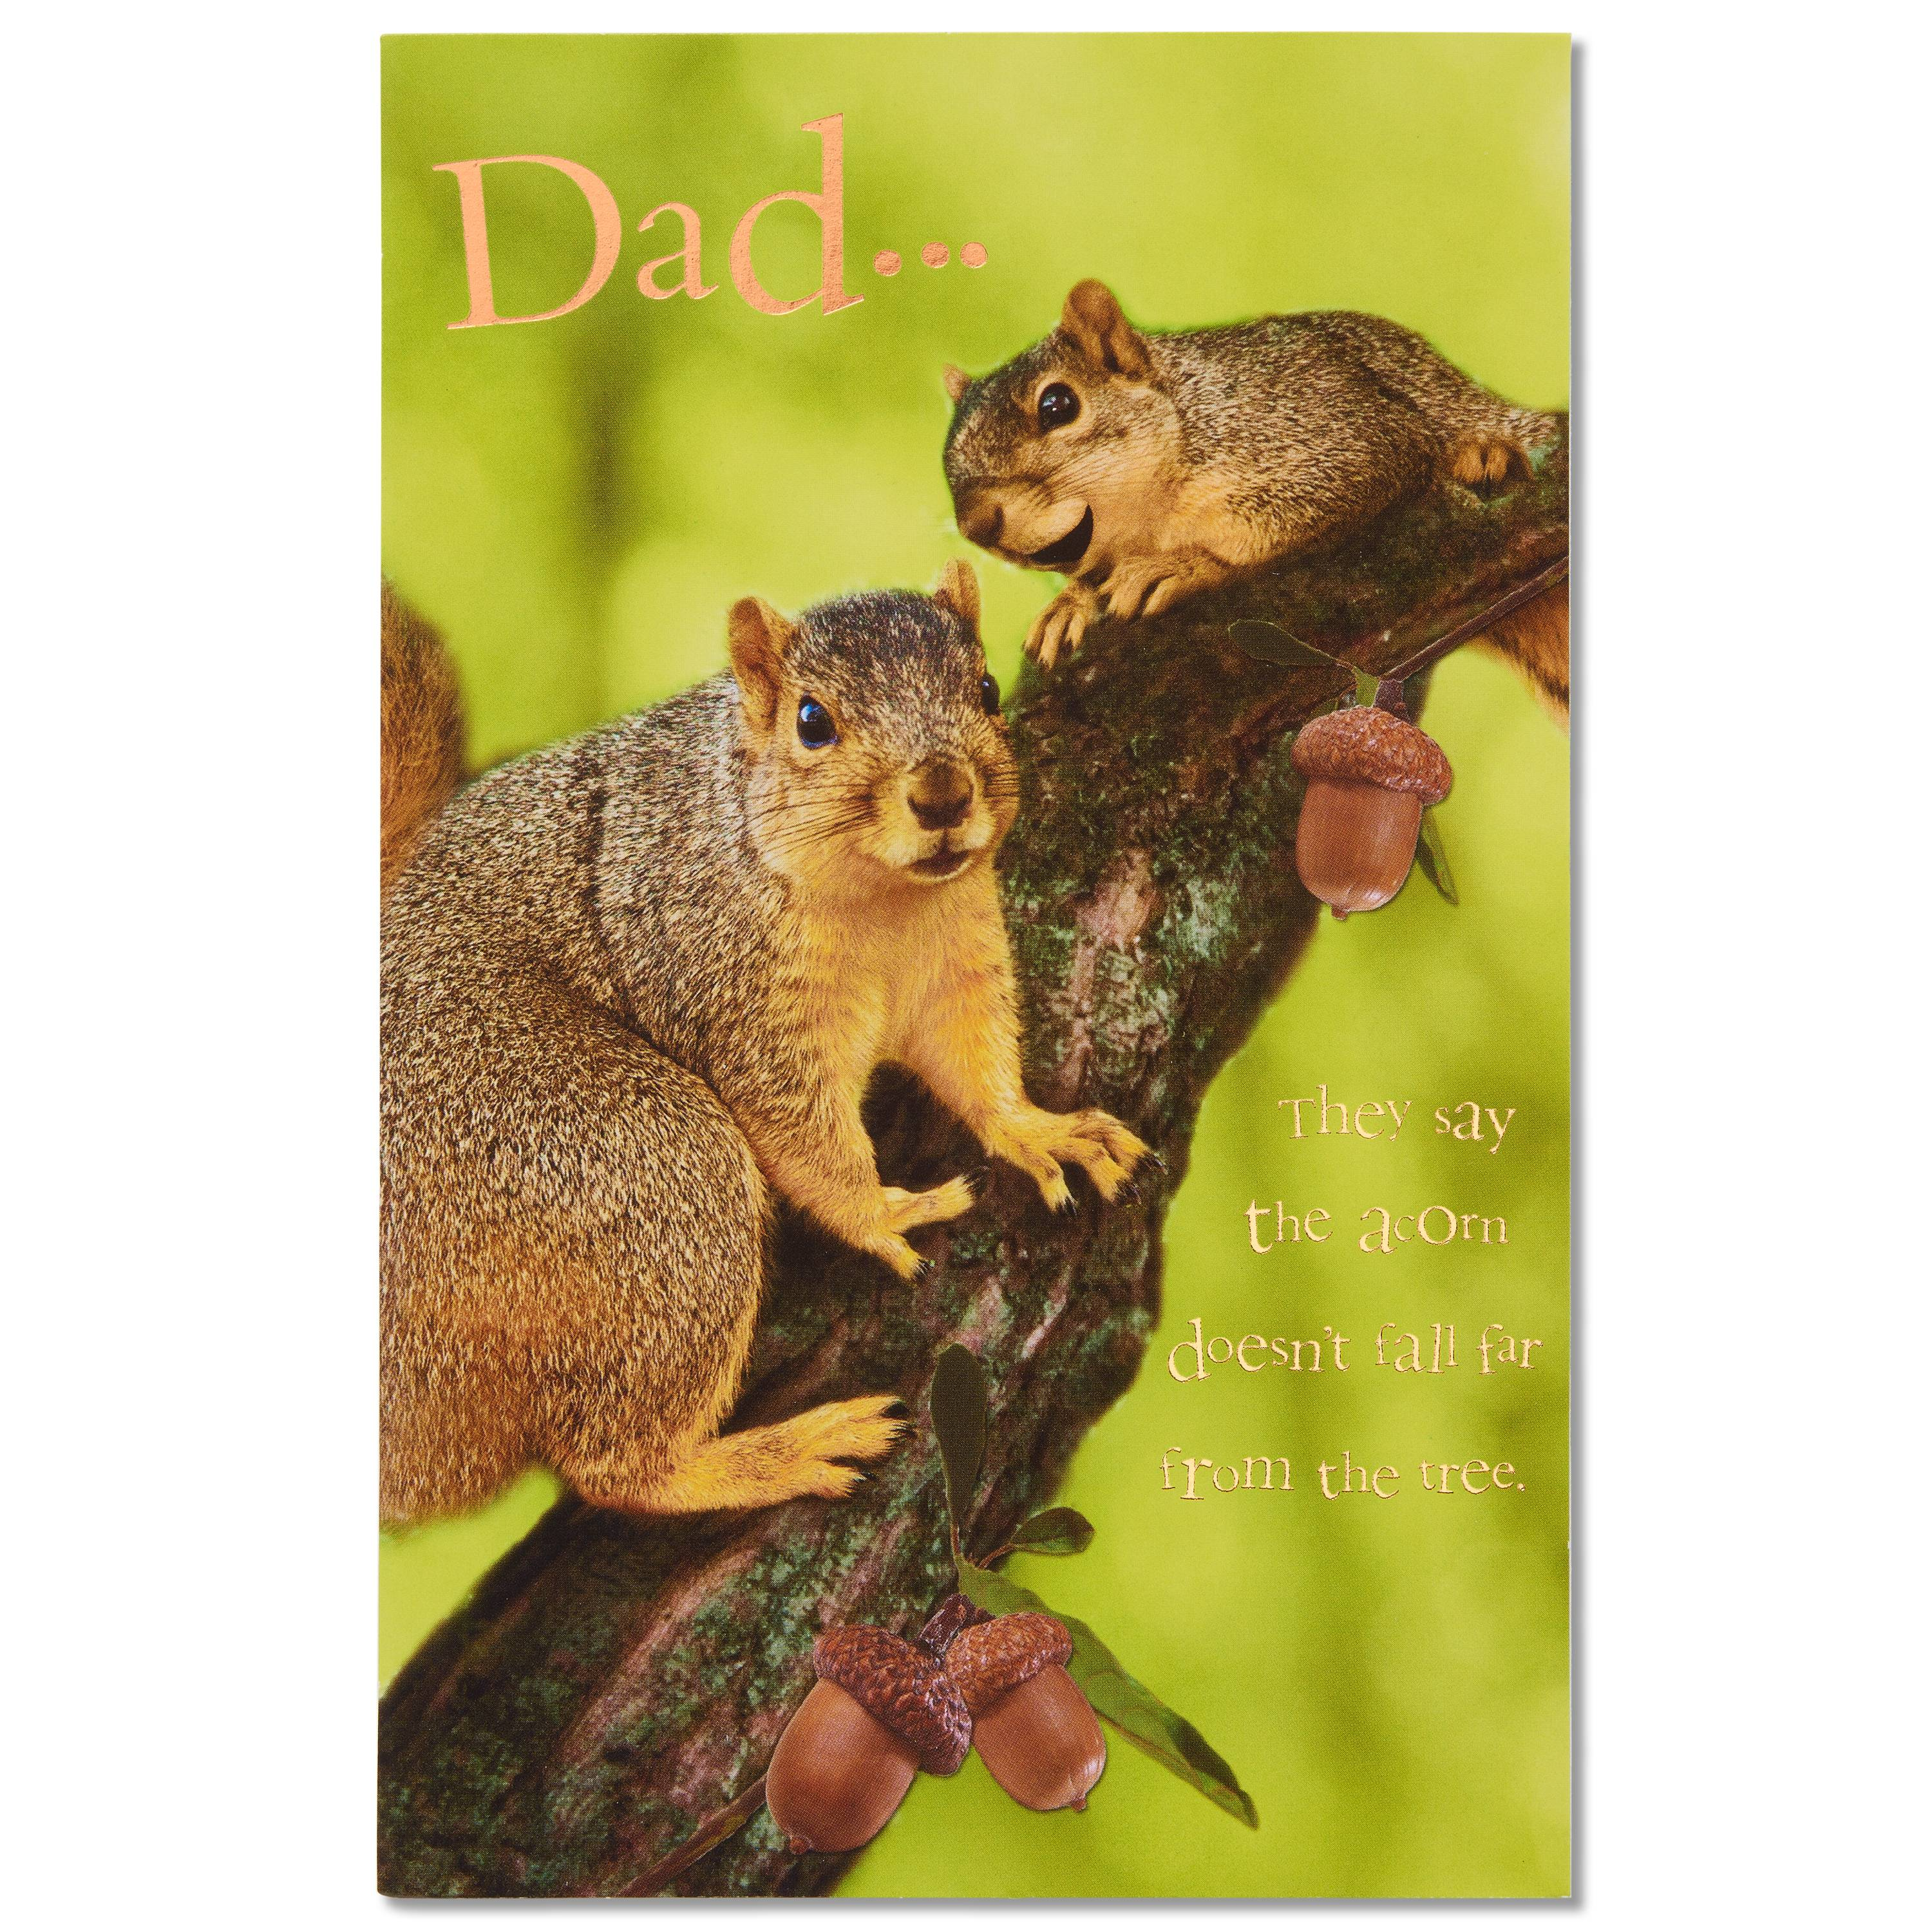 Funny Little Nut Birthday Card for Dad with Foil